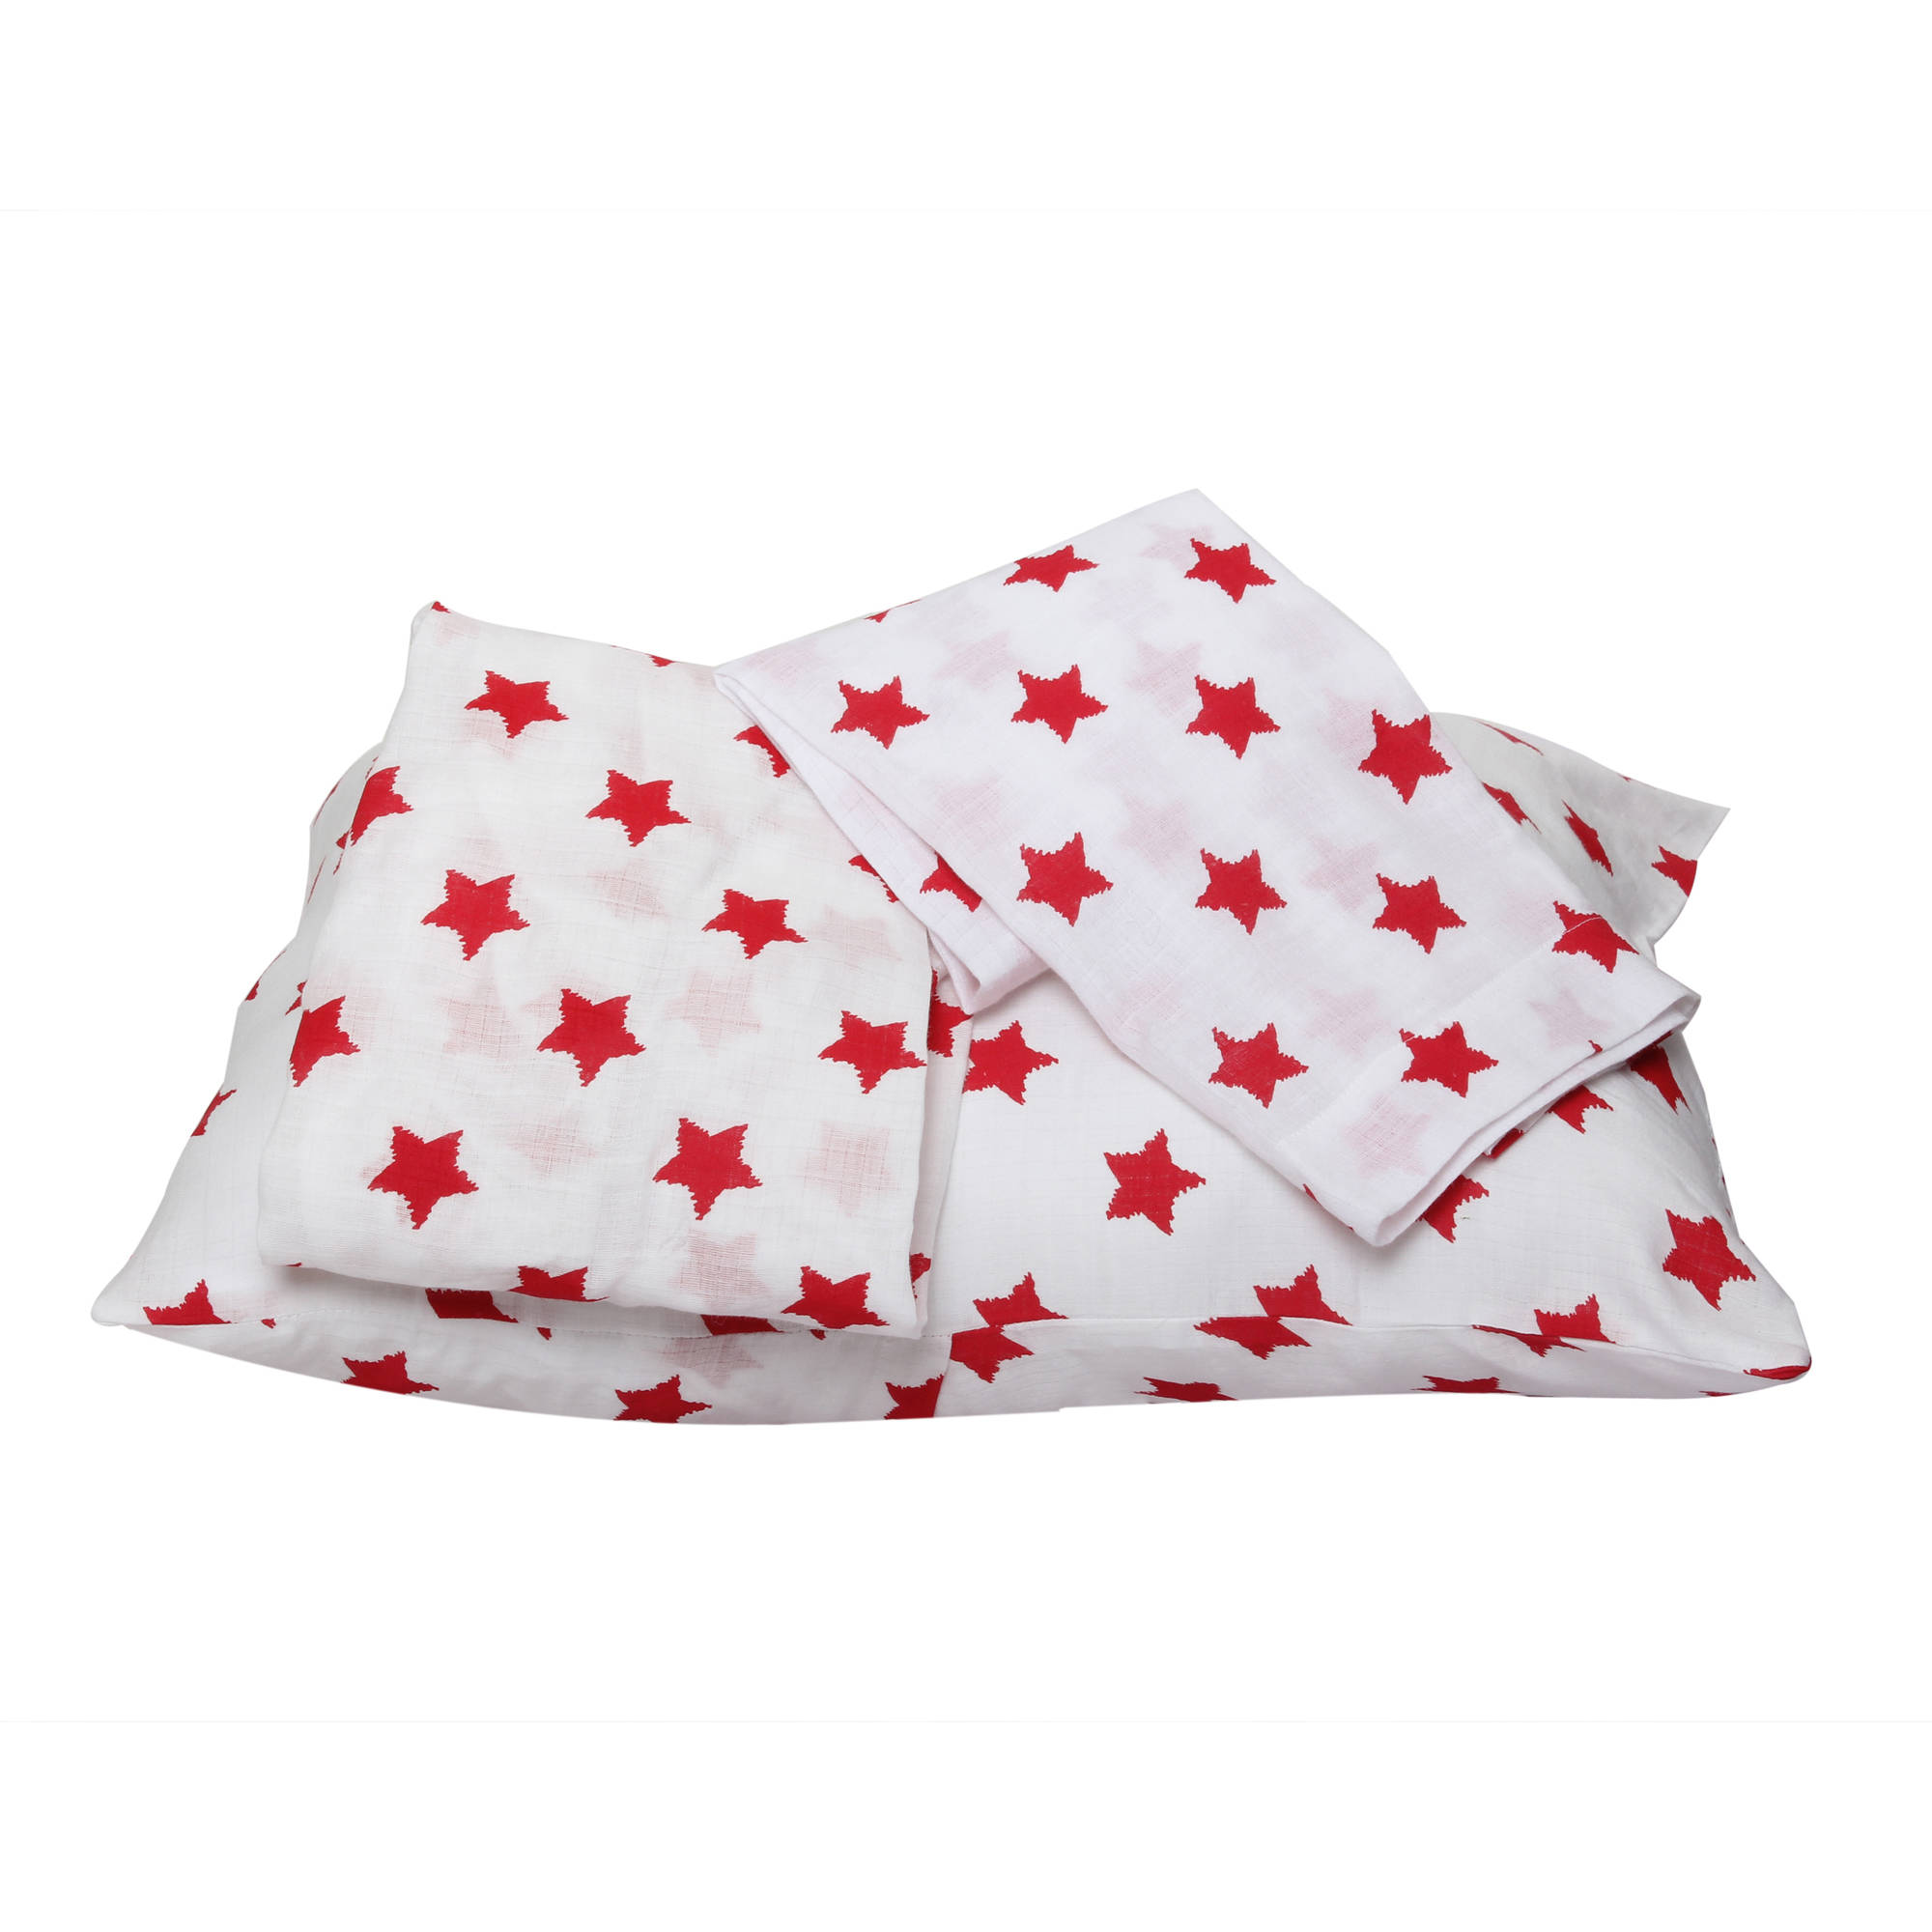 Bacati - Stars 100% Cotton breathable Muslin 3-Piece Toddler Bedding Sheet Set, Red